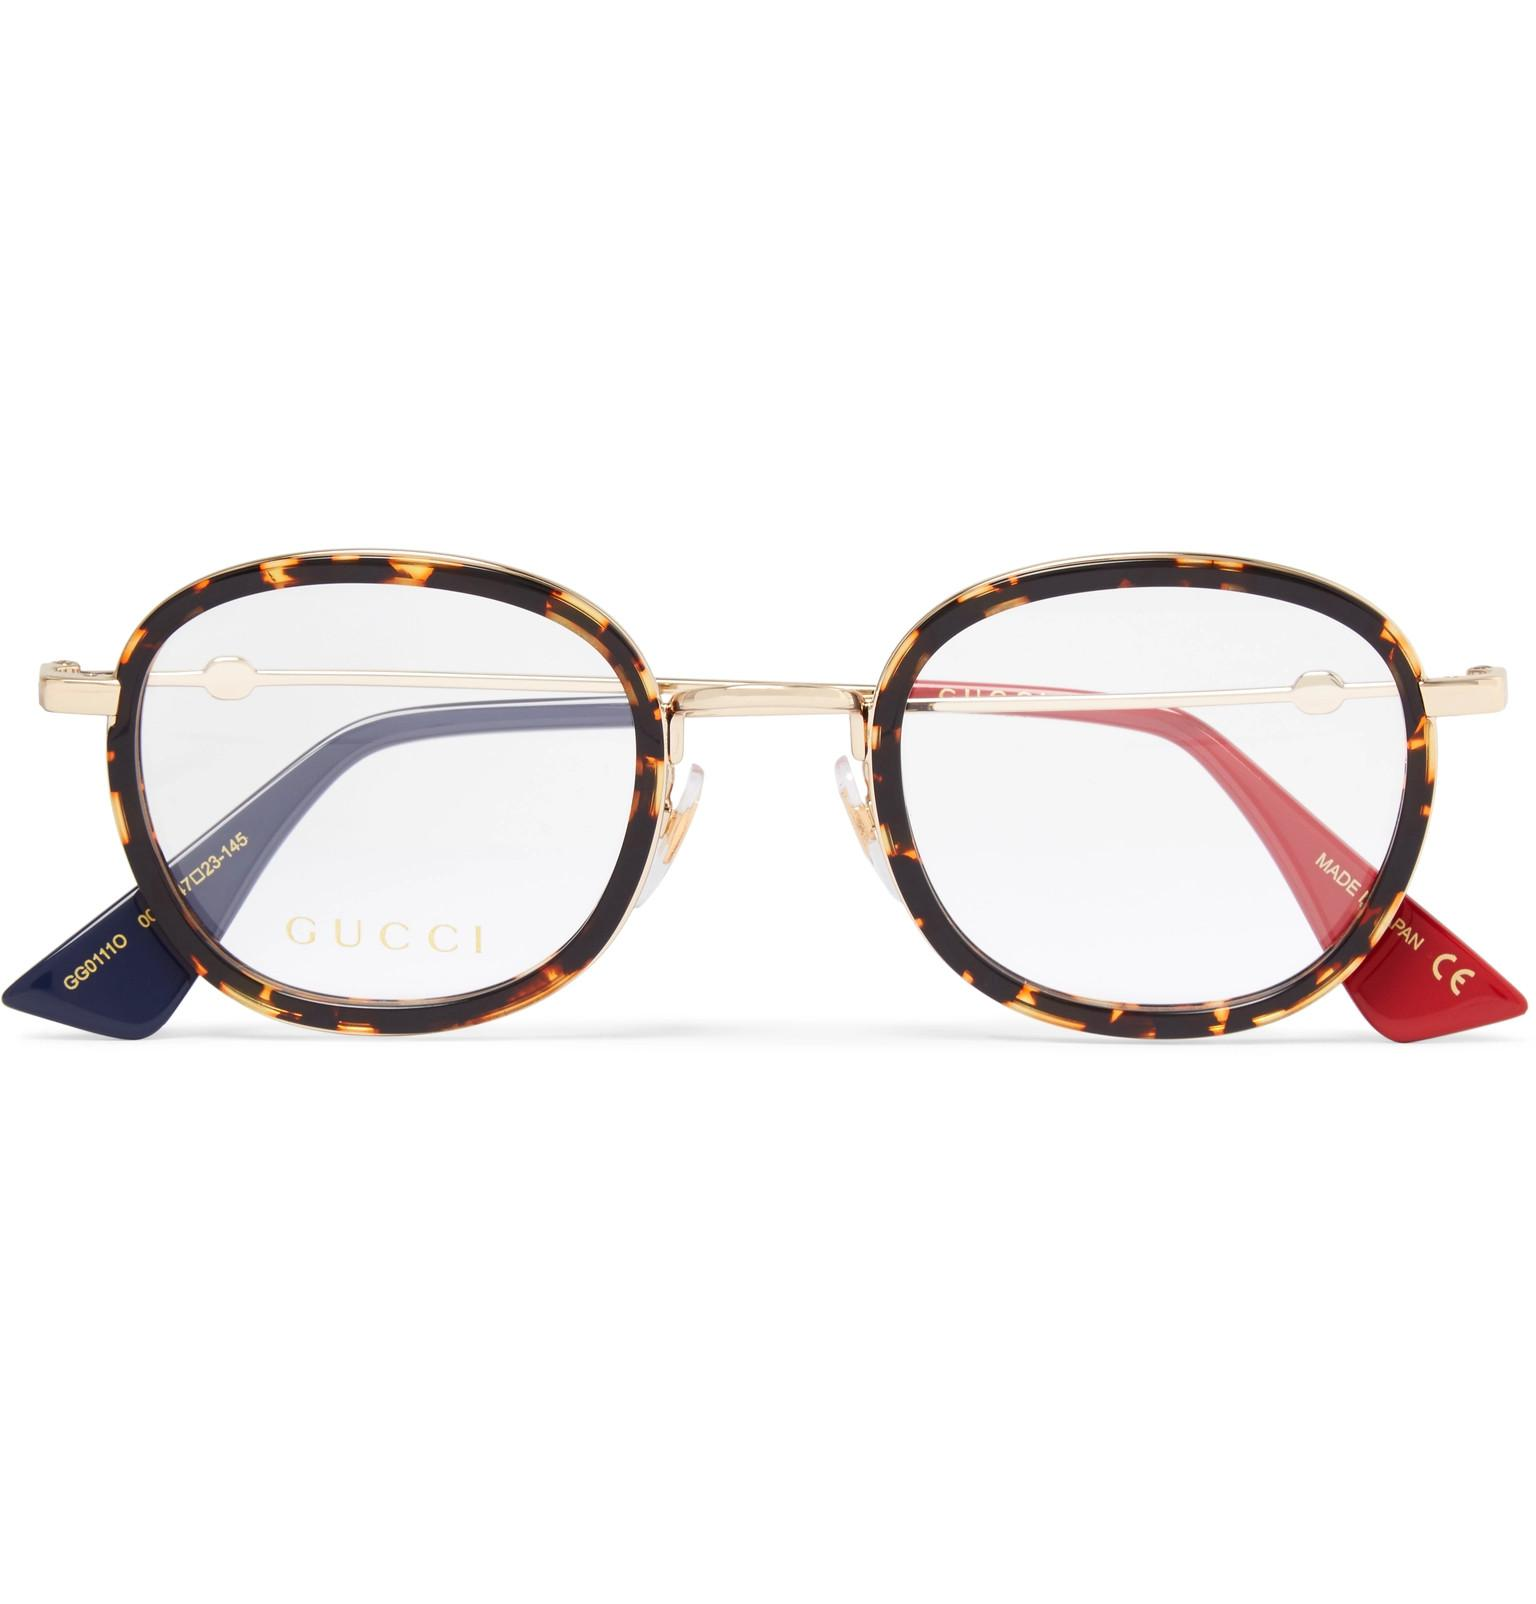 8020f3faf5 Lyst - Gucci Round-frame Acetate And Gold-tone Optical Glasses in ...